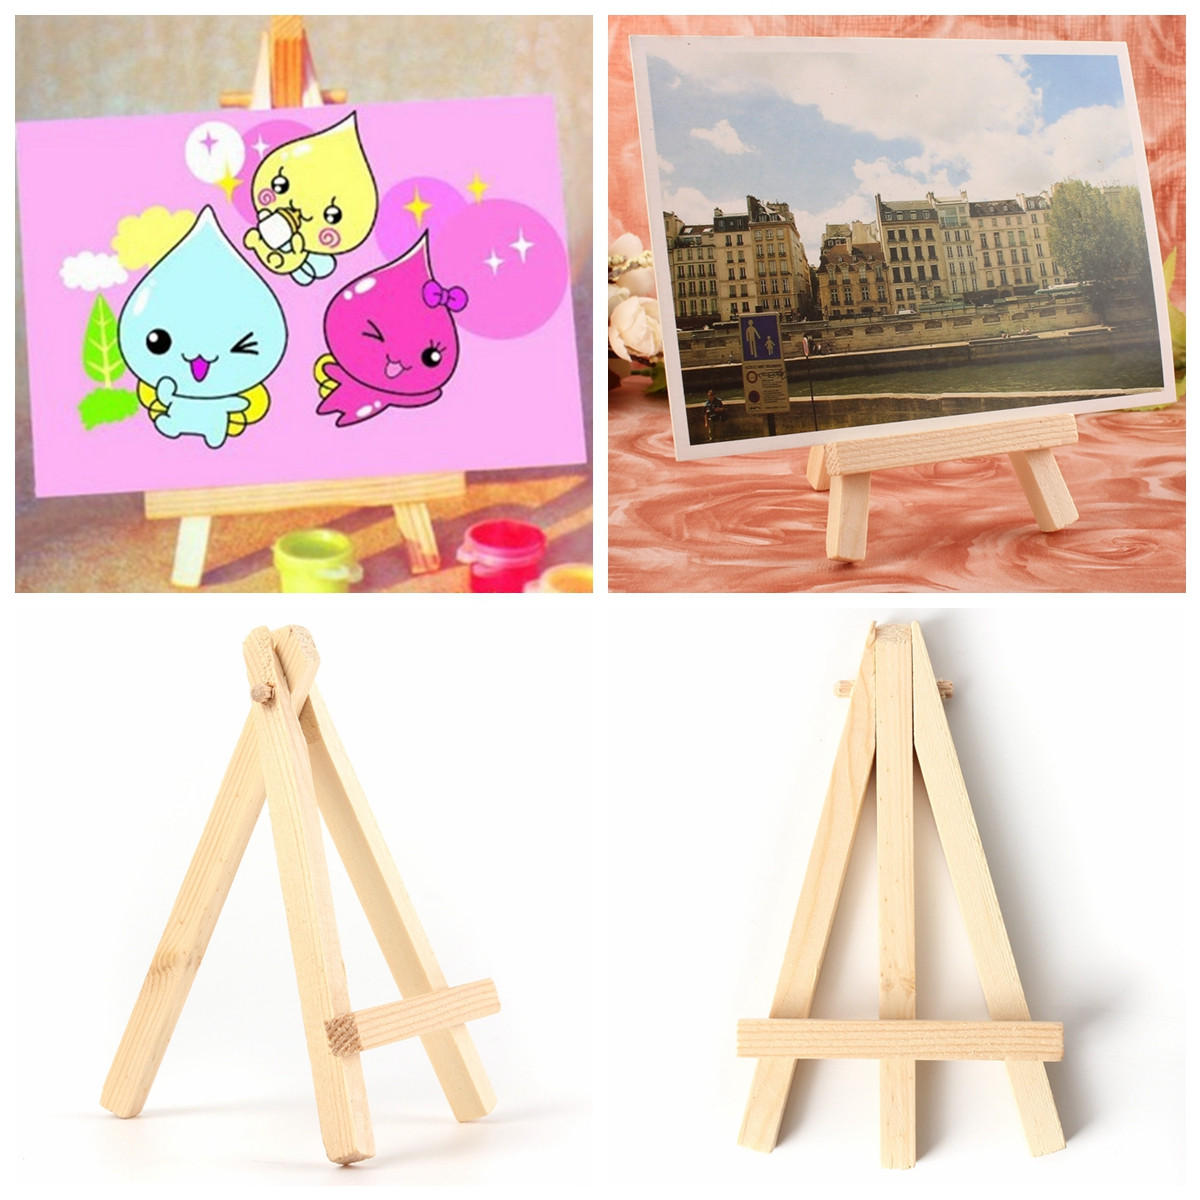 10 pcs 2.75'' x 4.72'' Tablet Drawing Board Holder Wooden Easels Art Painting Stand Display for Kids Student Artist Supplies